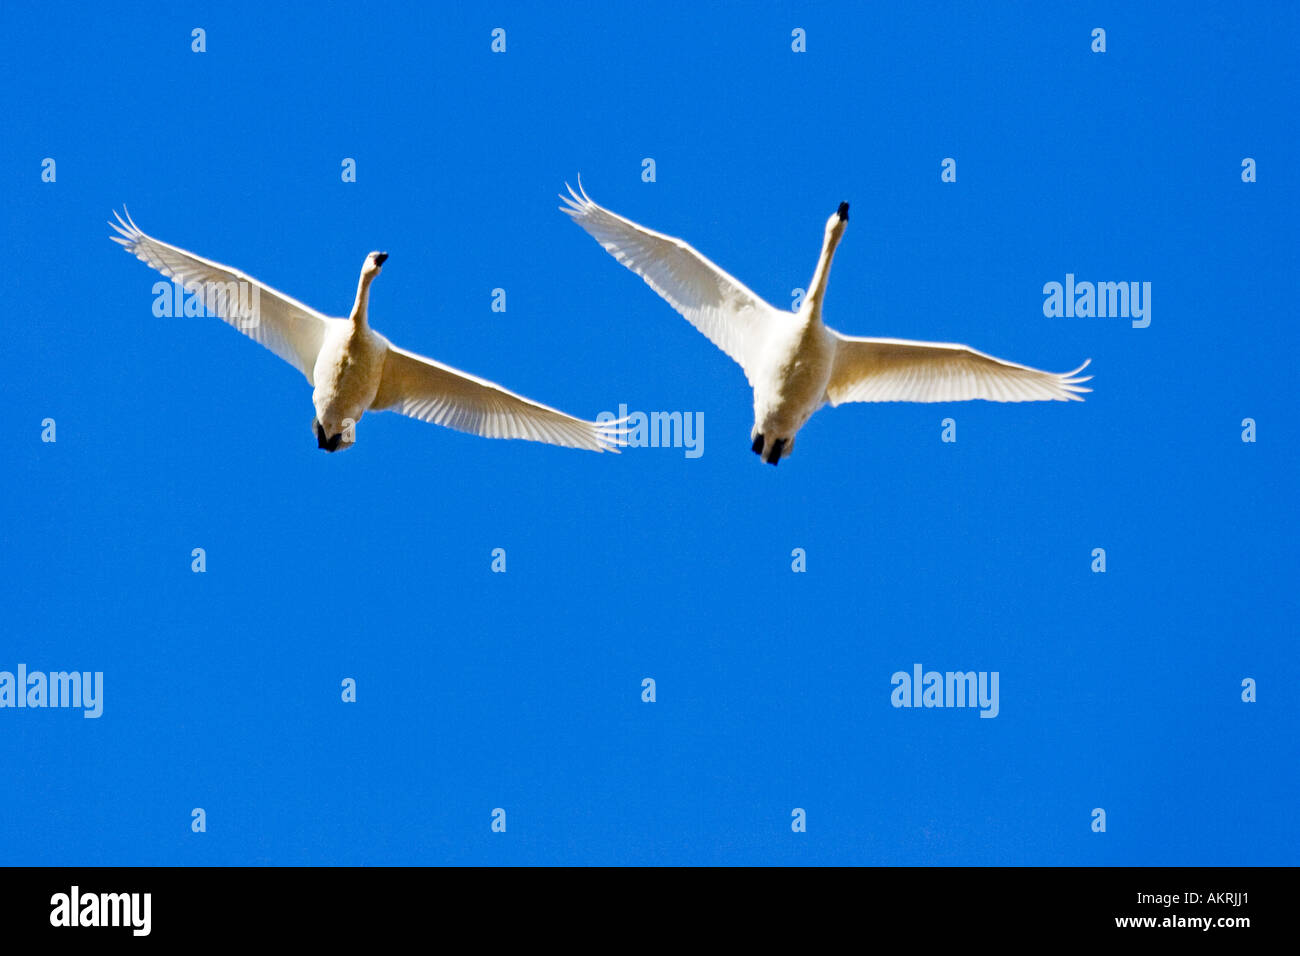 Trumpeter Swans (Cygnus buccinator) flying, Johnson DeBay Swan Reserve, Mount Vernon, Skagit Valley, Washington, USA - Stock Image